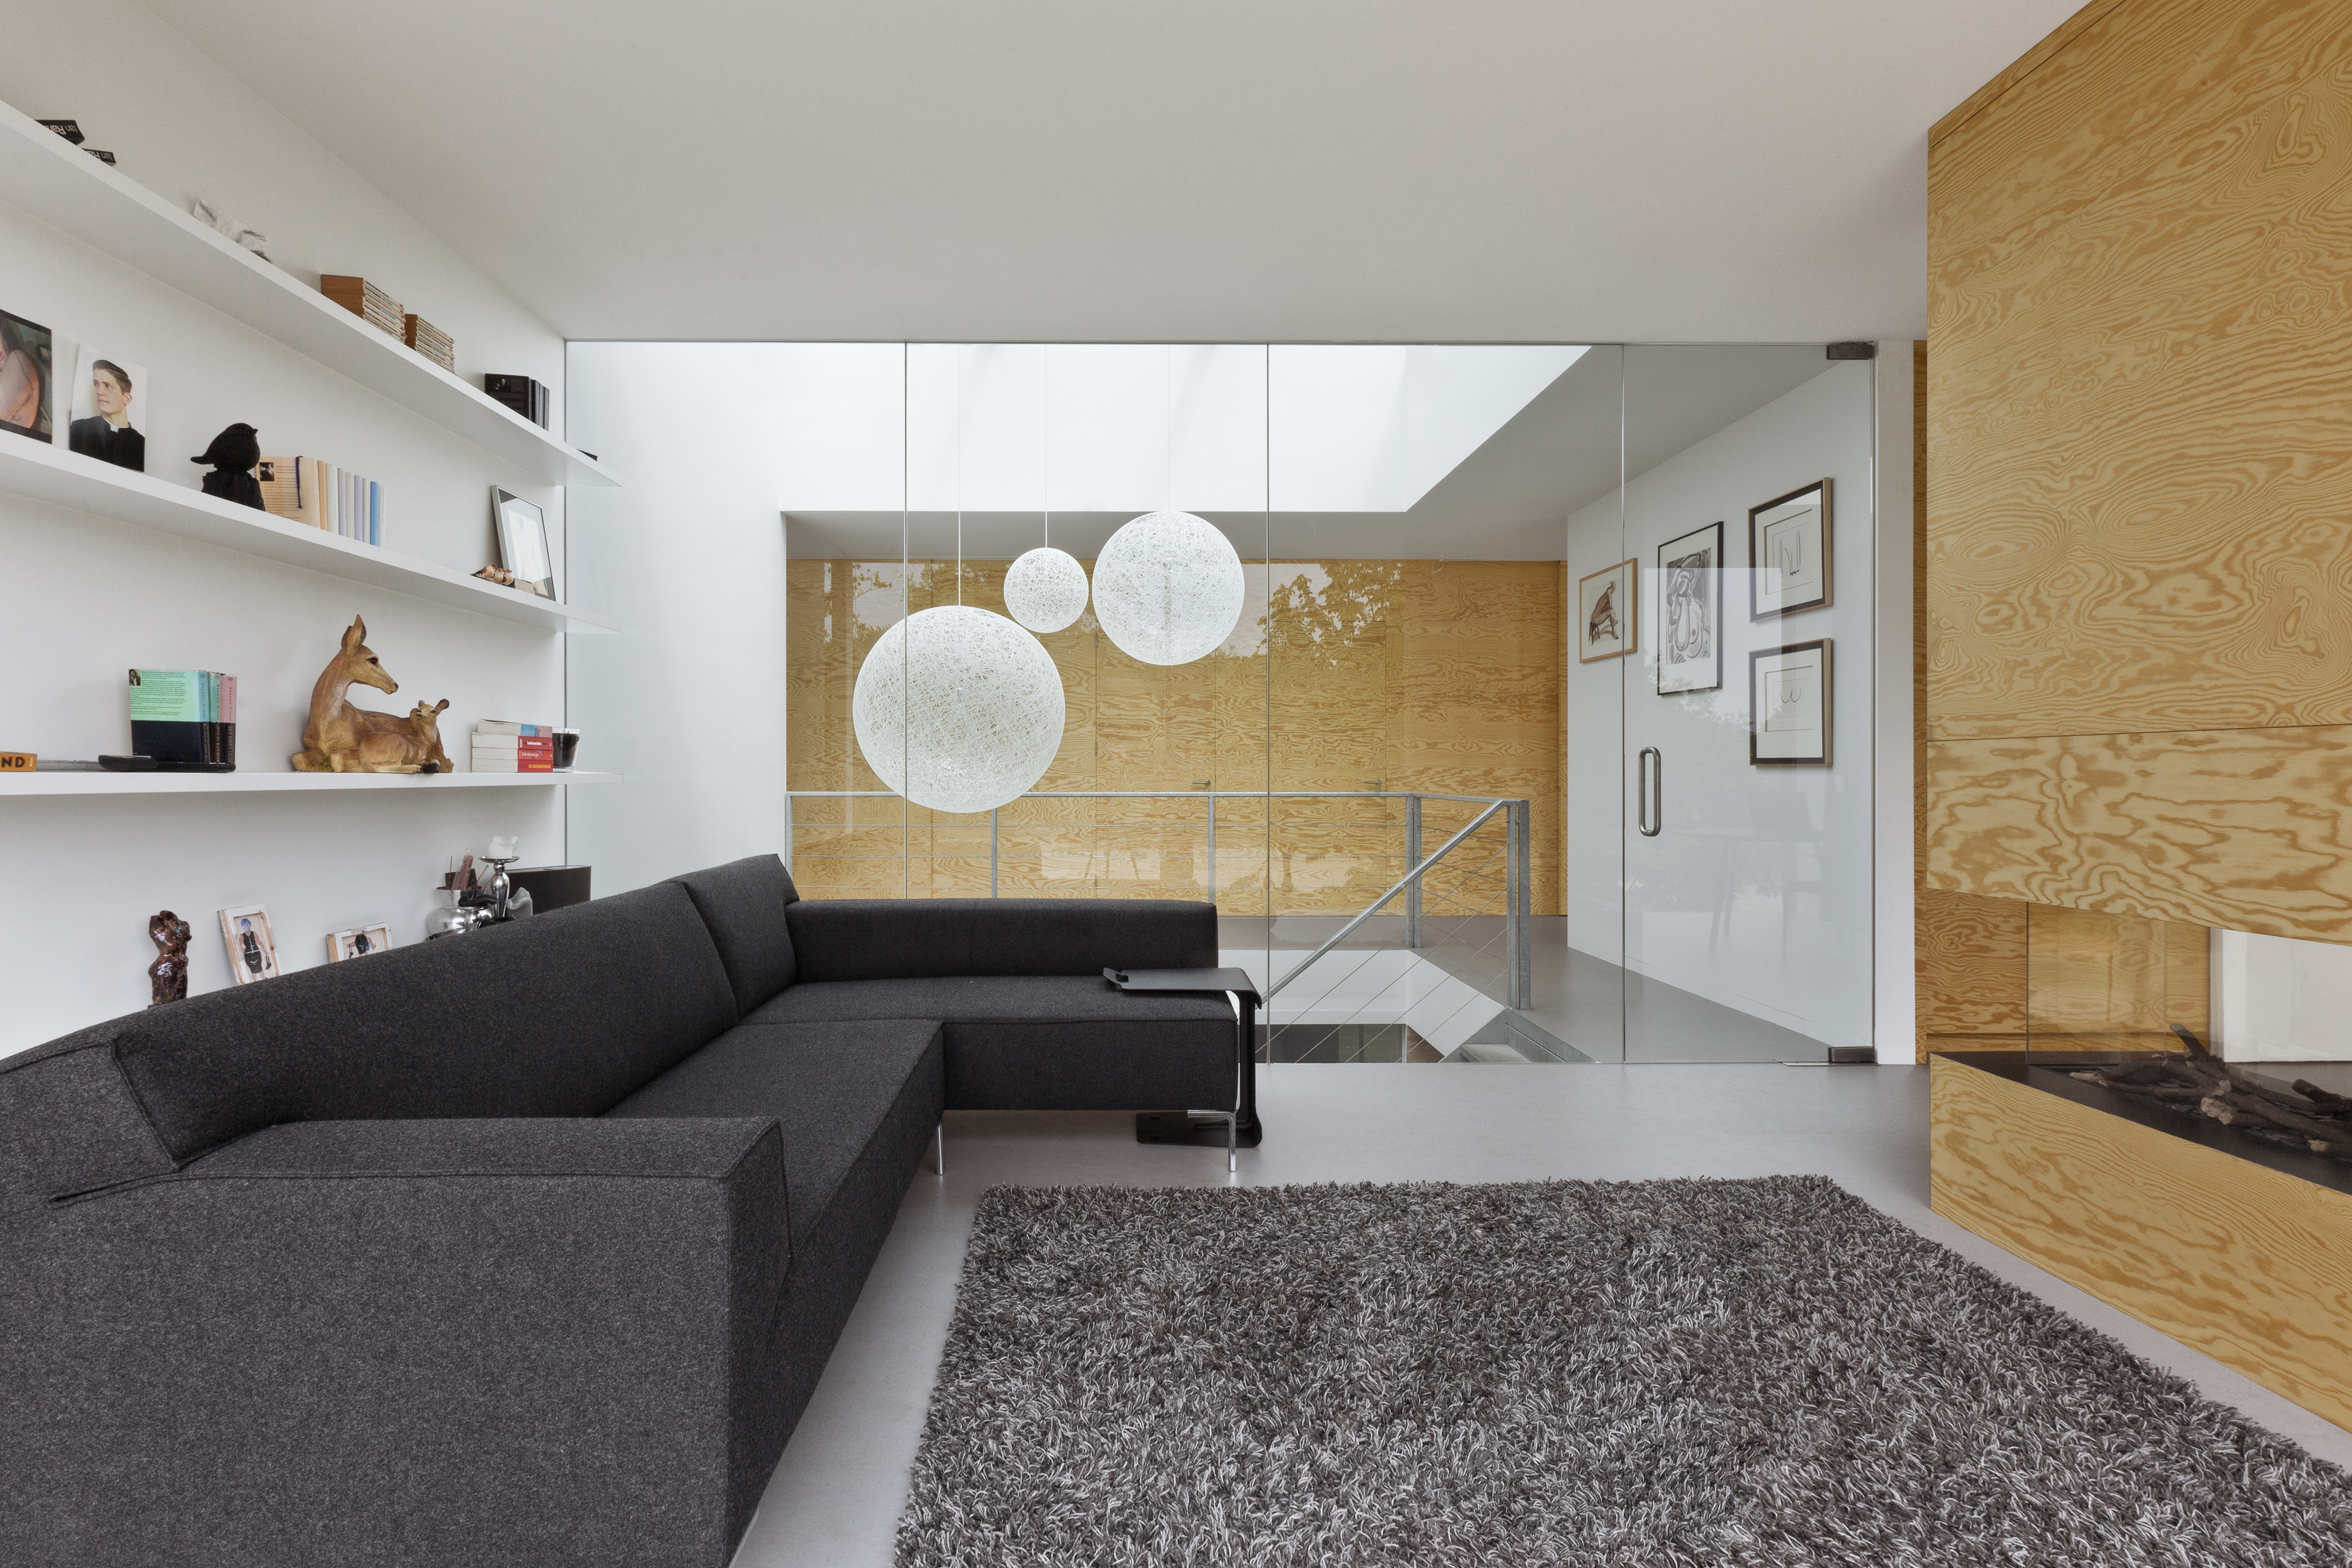 Villa Bloemendaal van i29 interior architects en Paul de Ruiter architects